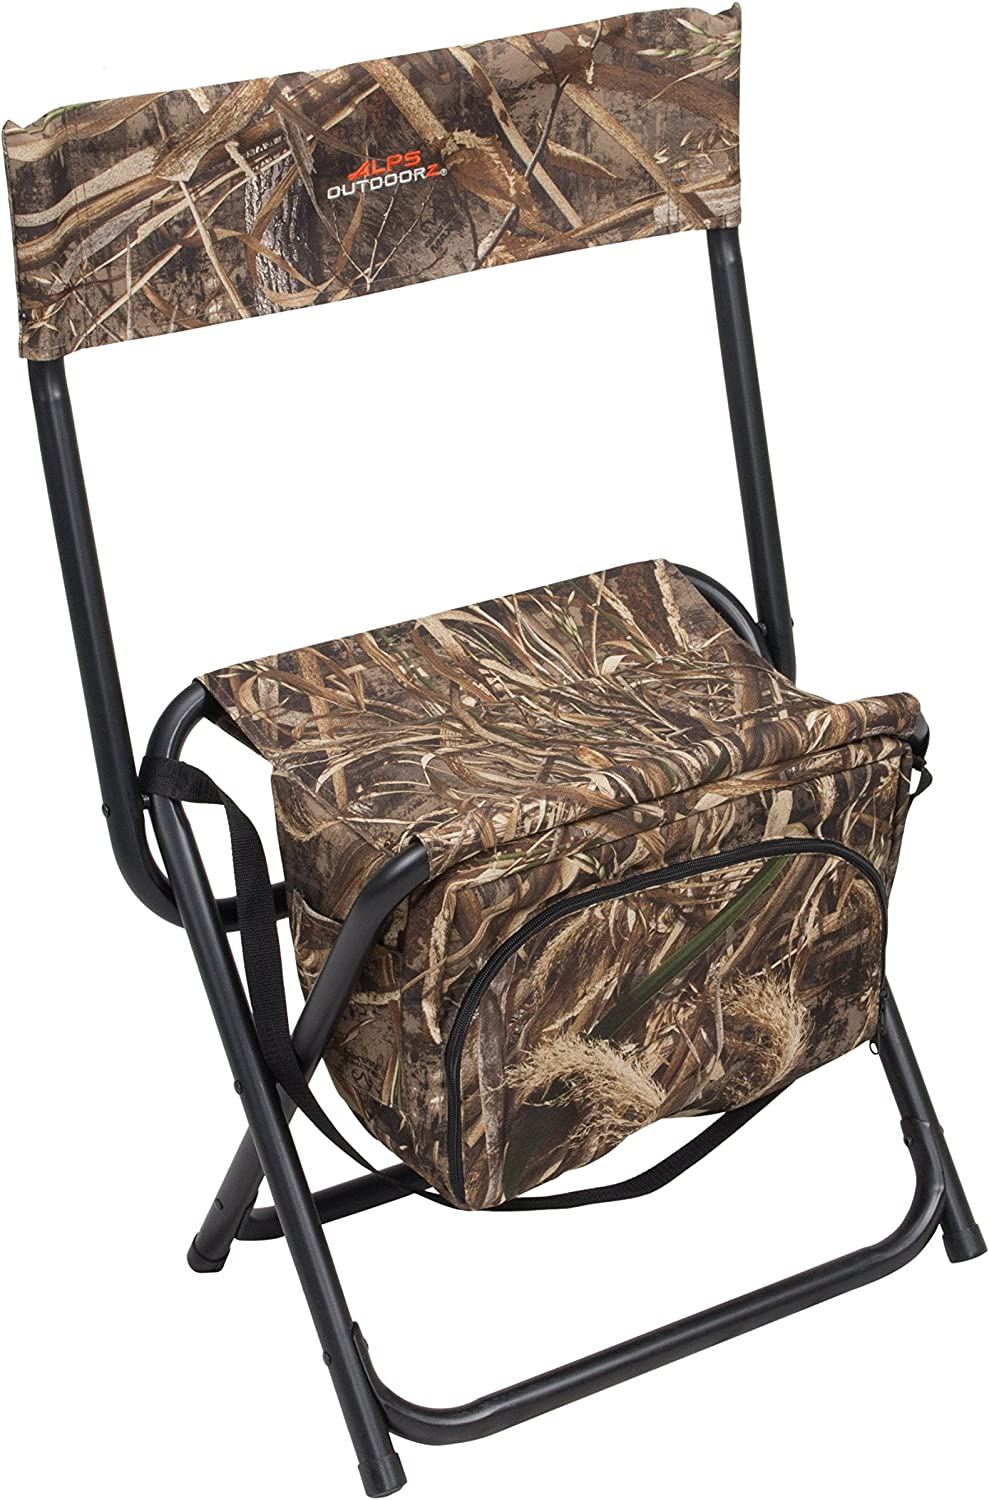 ALPS Outdoorz Dual Action, Realtree Max-5